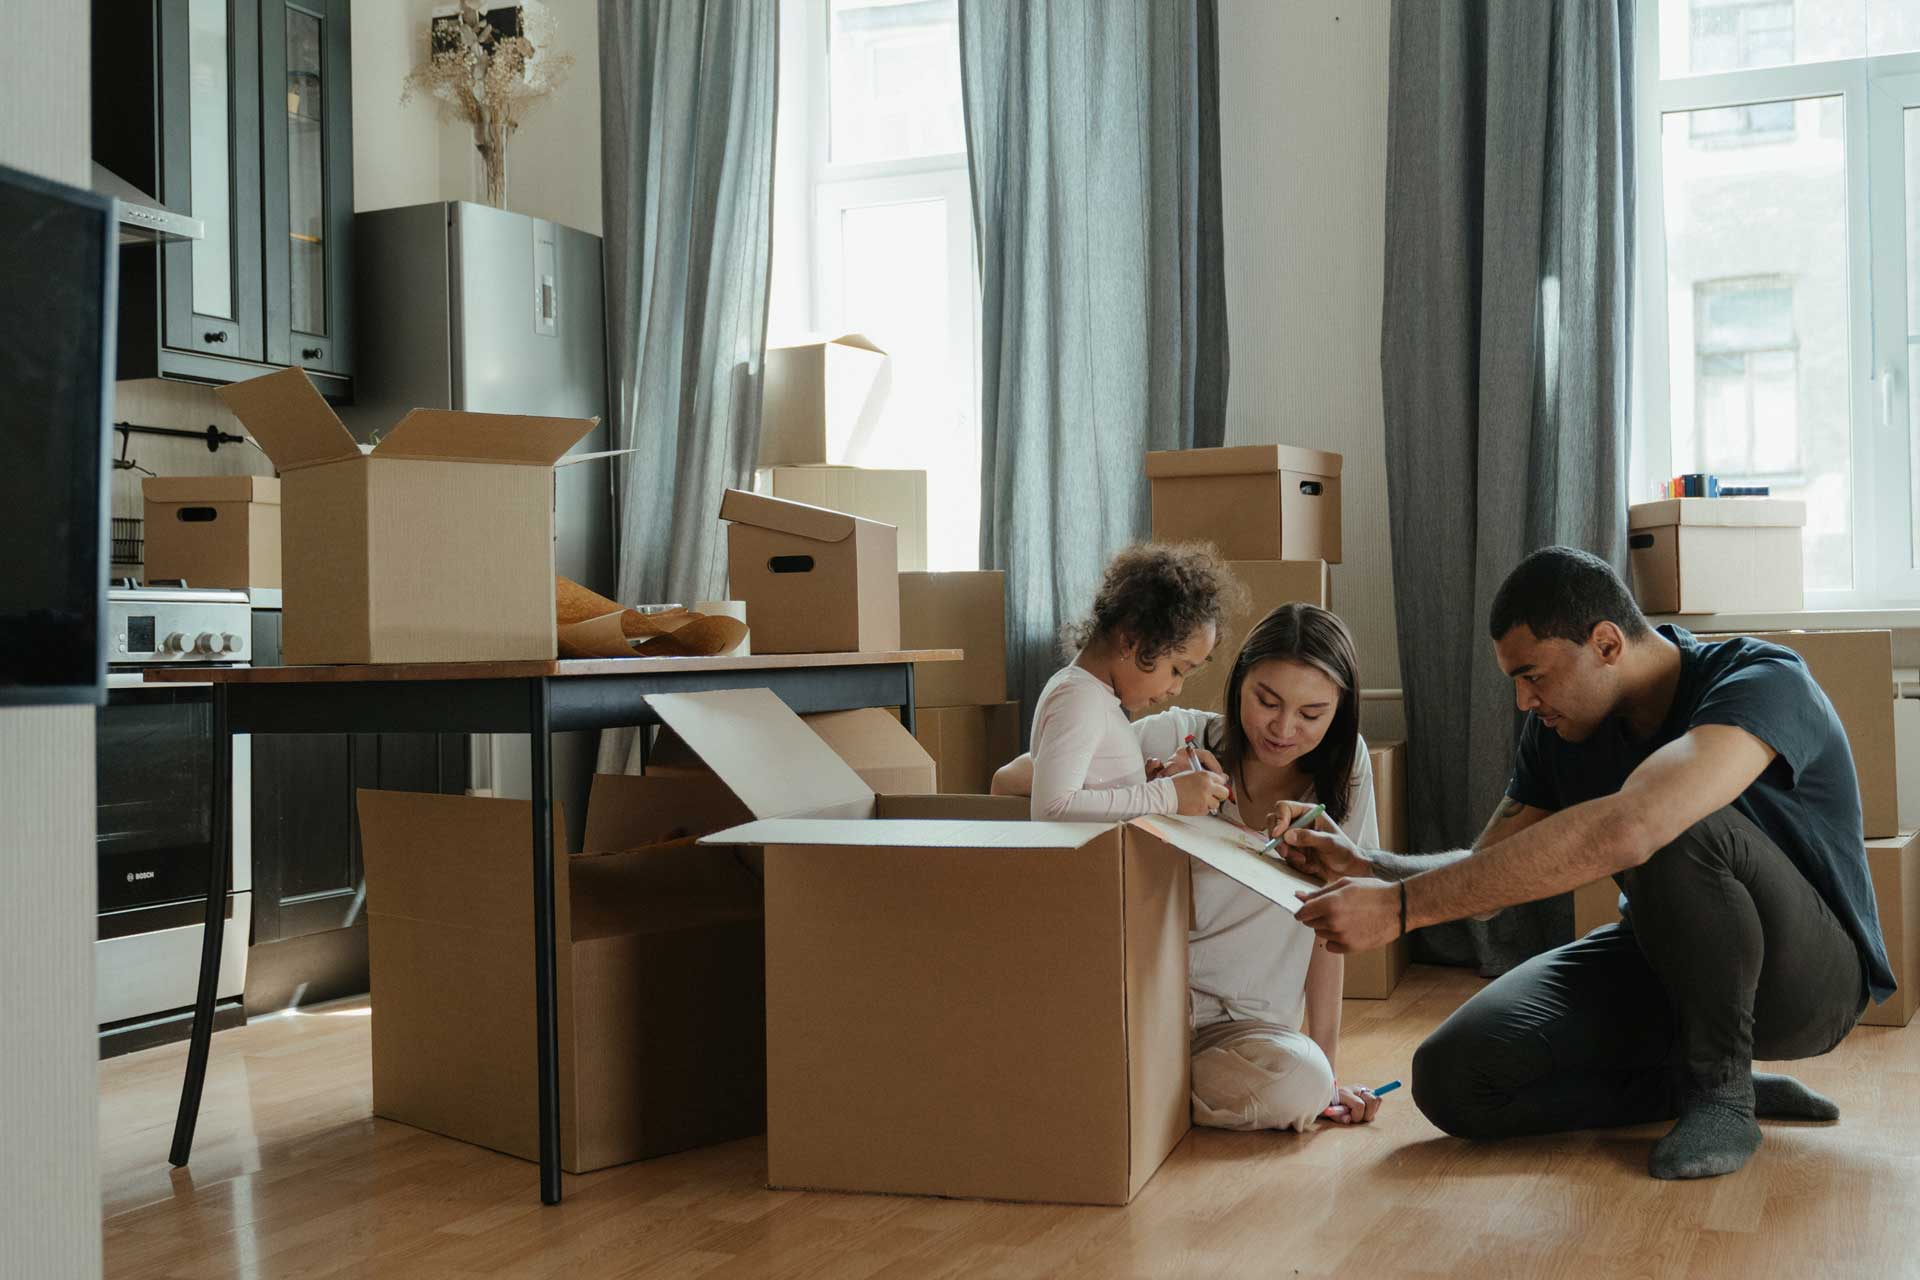 When should you move yourself?